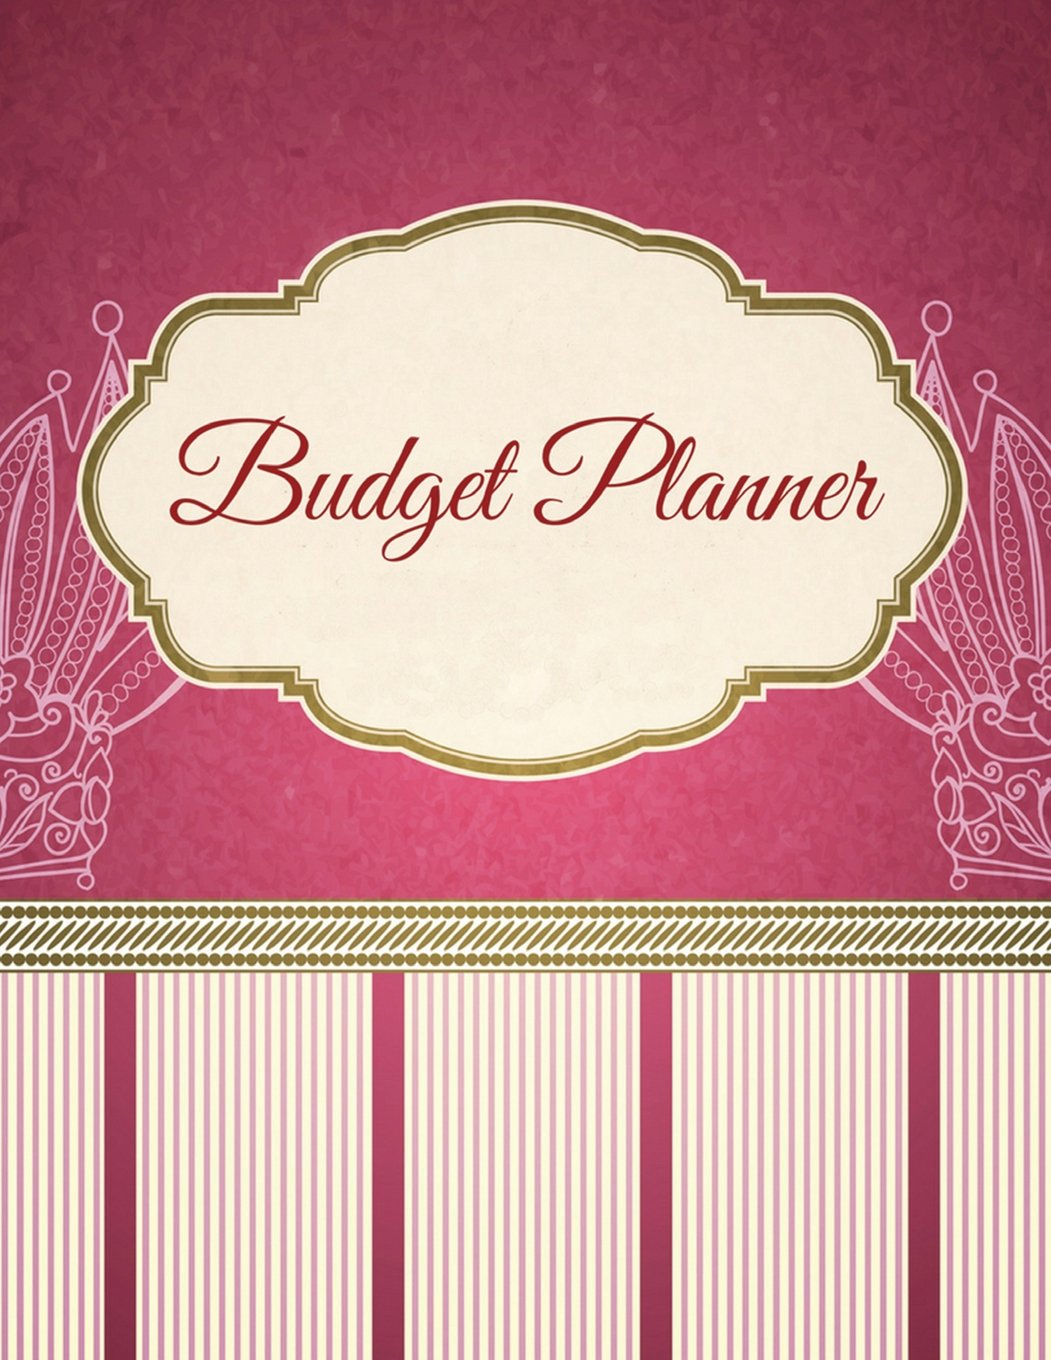 Budget Planner: Vintage Design Budget Planner for your Financial Life With Calendar 2018-2019 Beginner's Guide to Personal Money Management and Track ... Finance Journal Planning Workbook (Volume 8) Paperback – May 31, 2018 Marlene Winget 1720599807